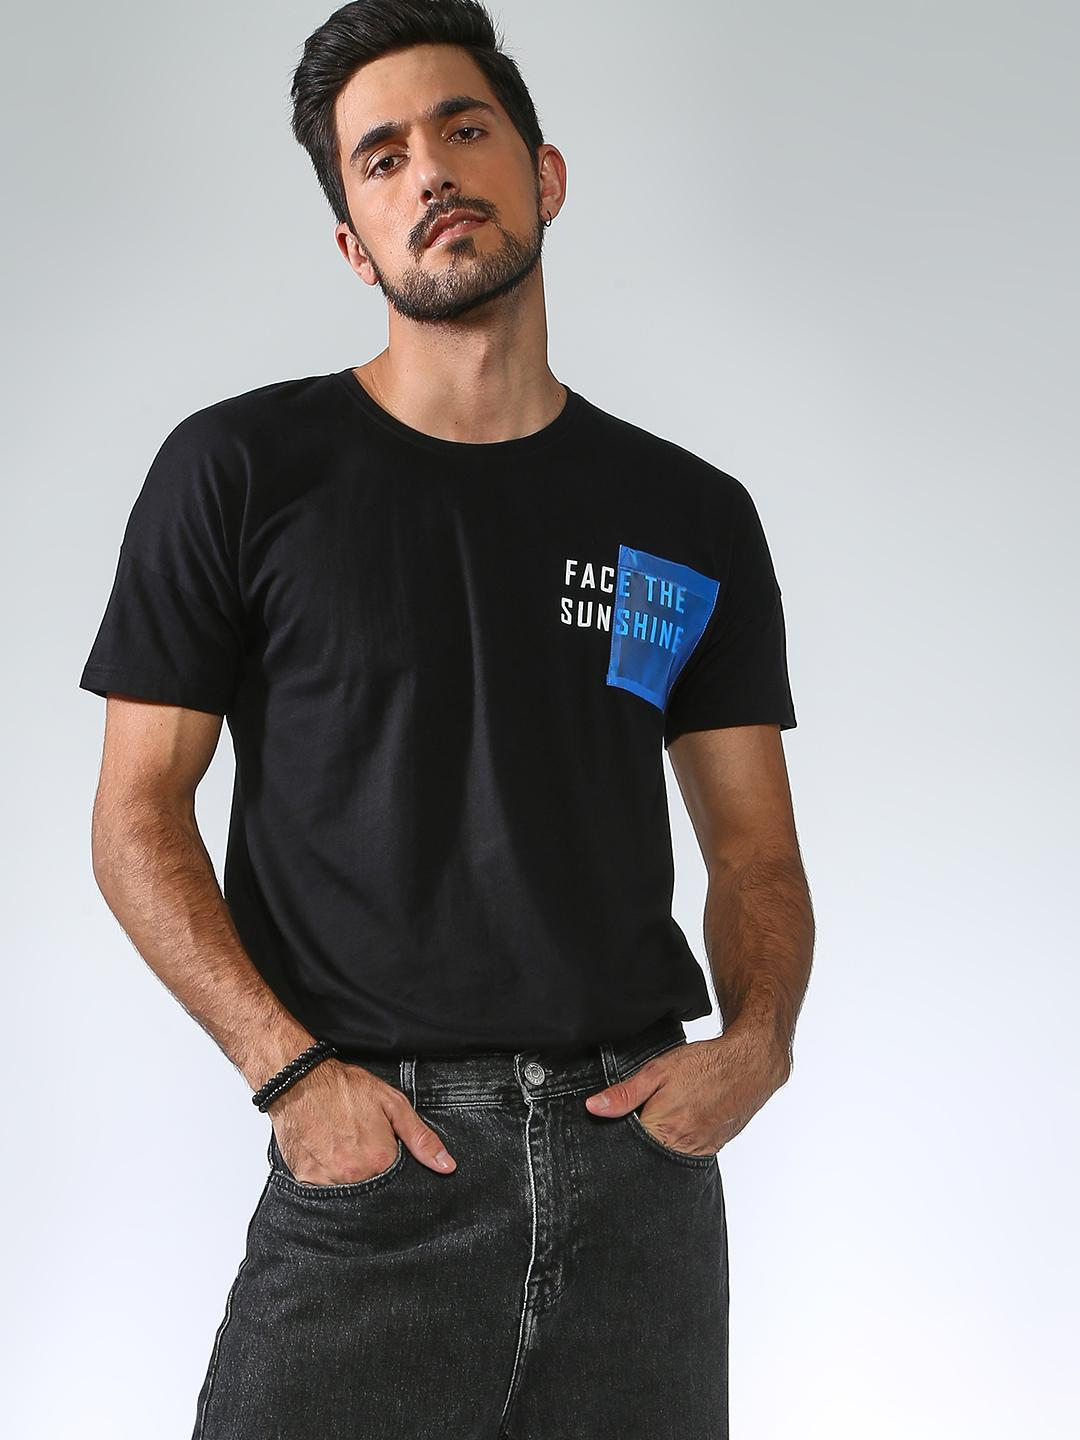 Blue Saint Black Text Placement Contrast Pocket T-shirt 1